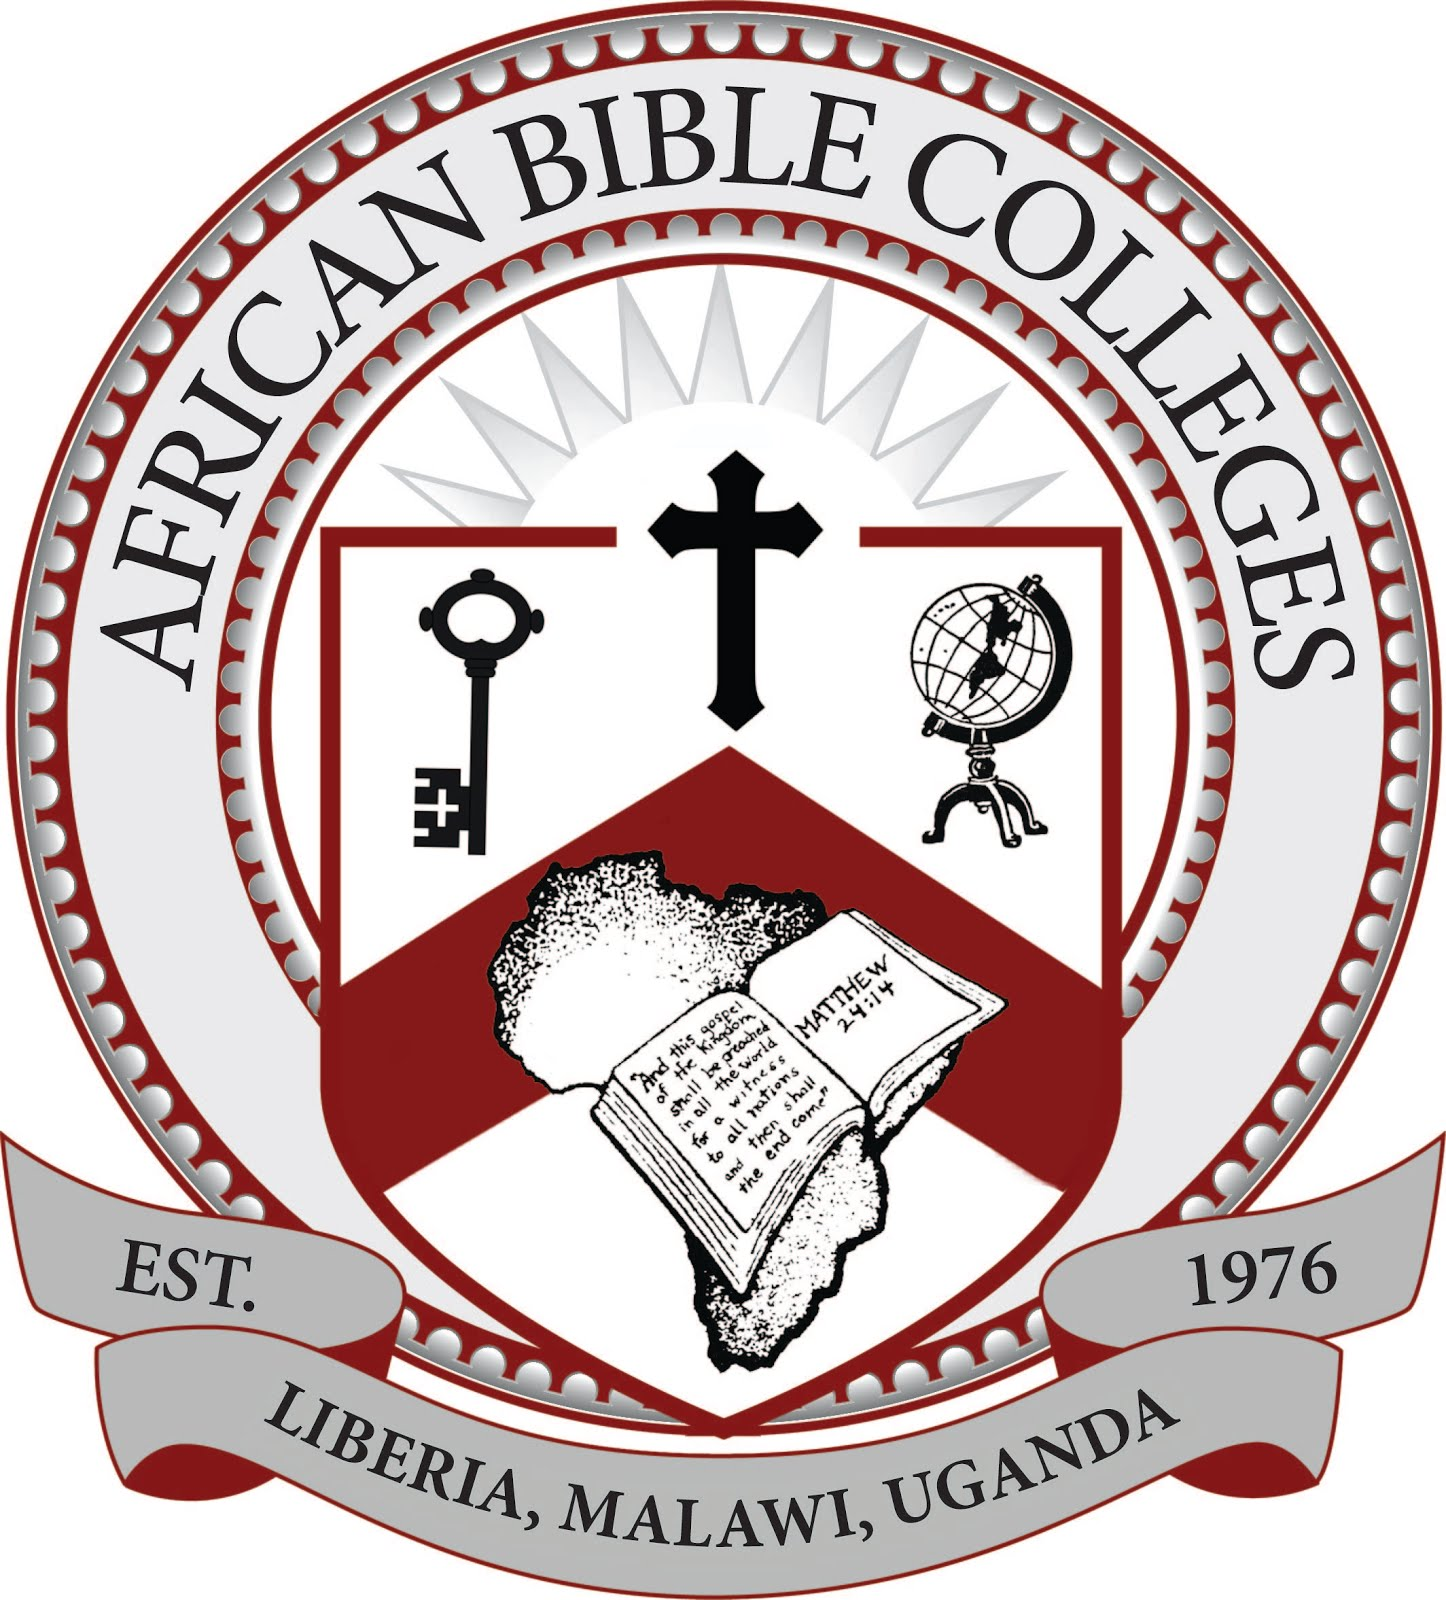 African Bible Colleges